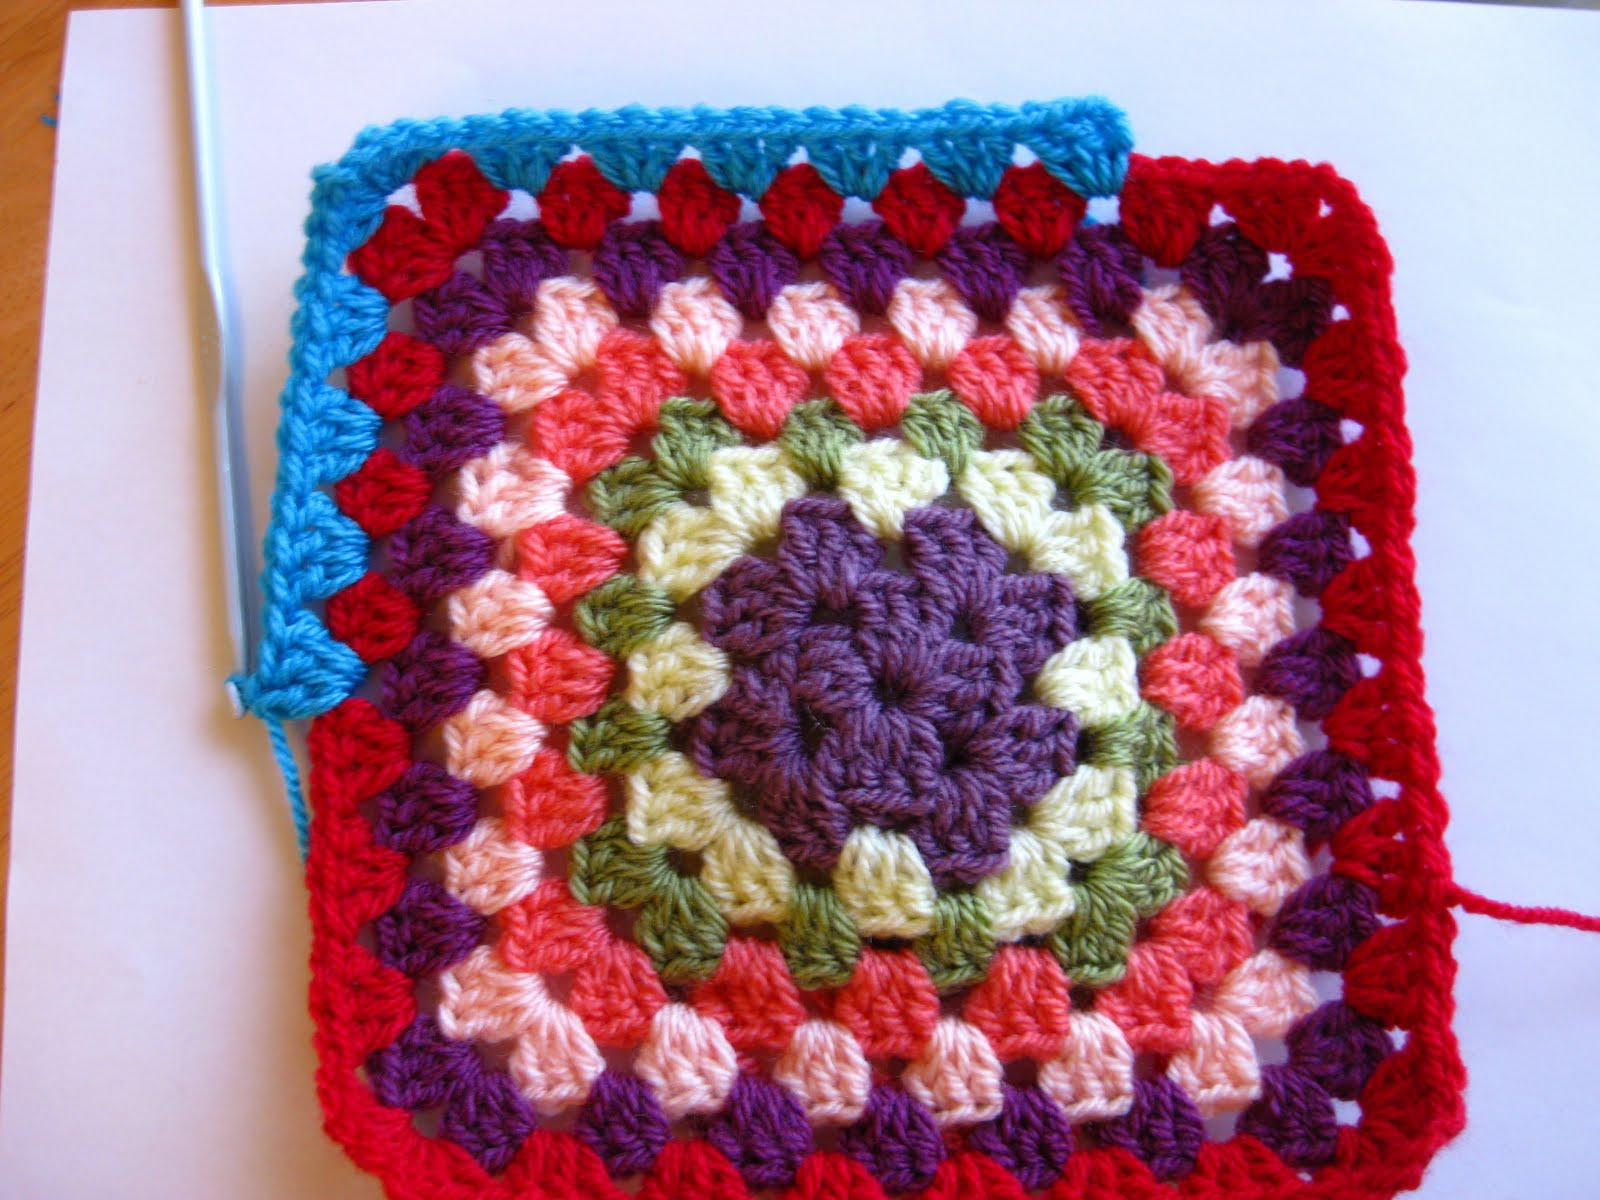 Crochet Basic Granny Square Tutorial : Bunny Mummy: How to crochet a Granny Square